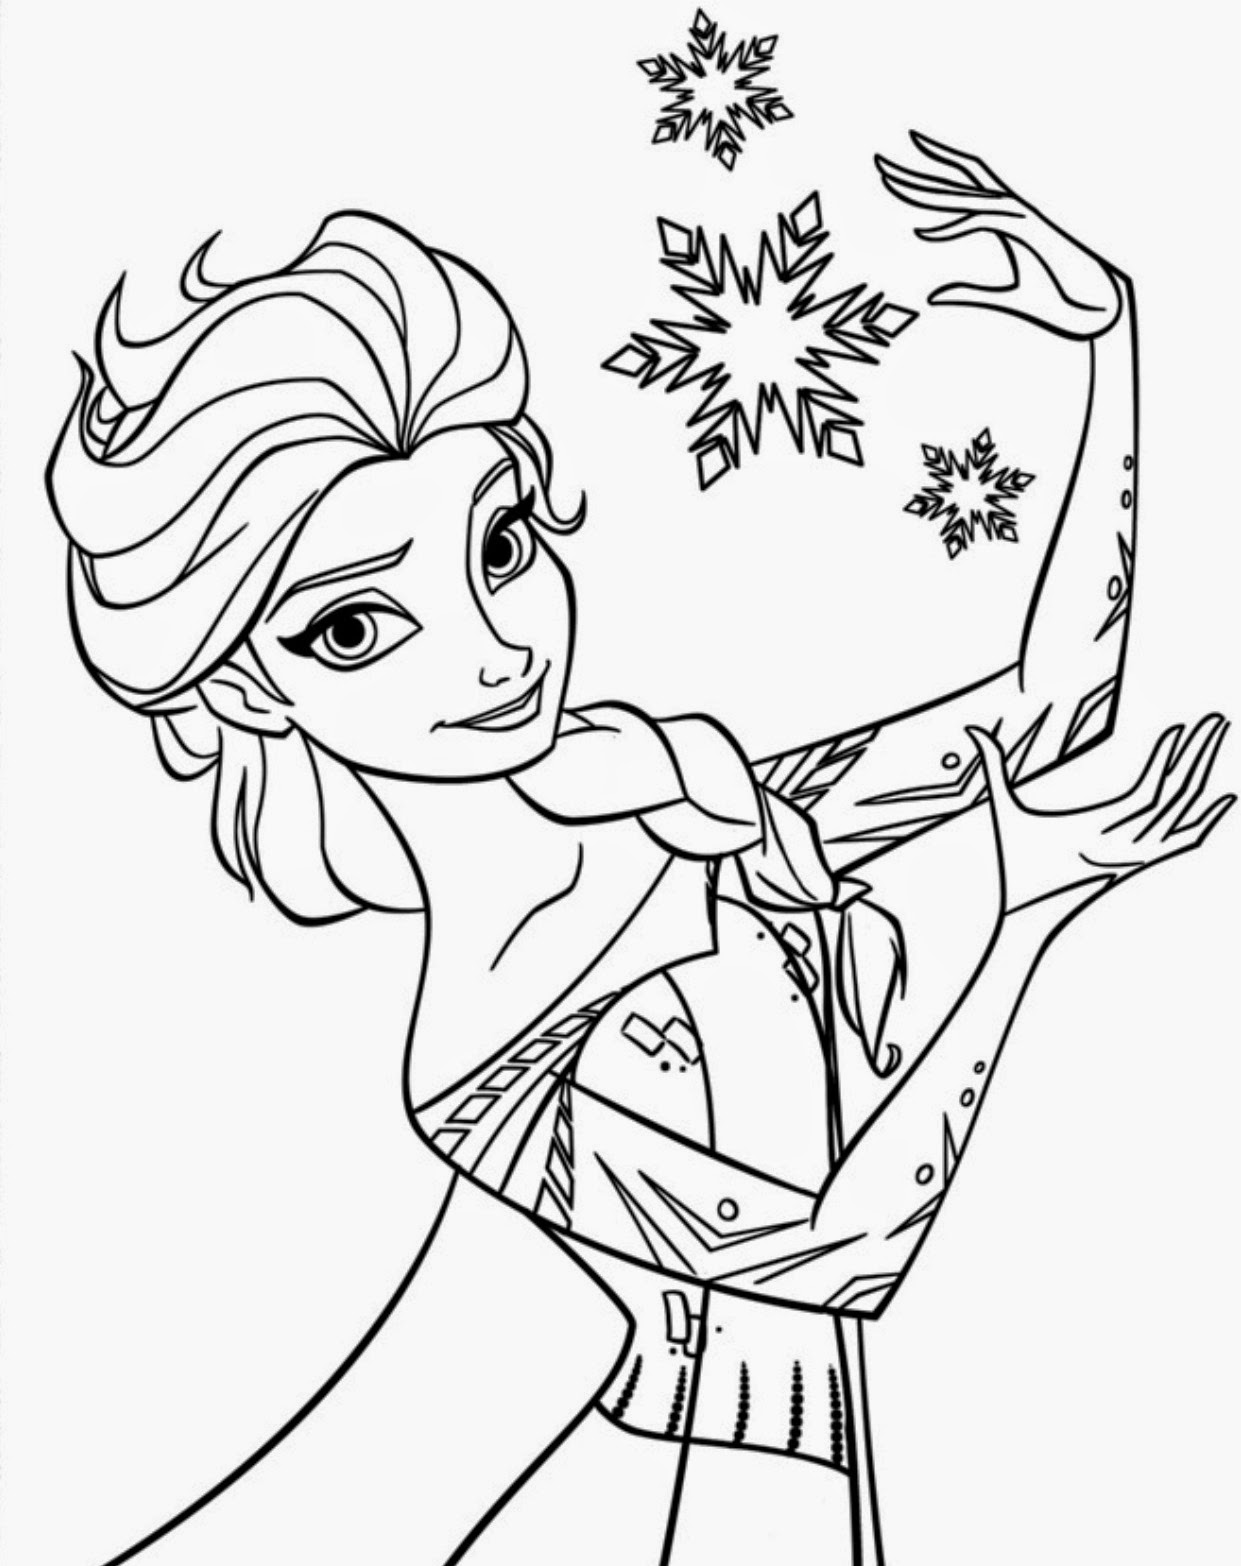 frozen coloring page coloring page world frozen portrait frozen coloring page